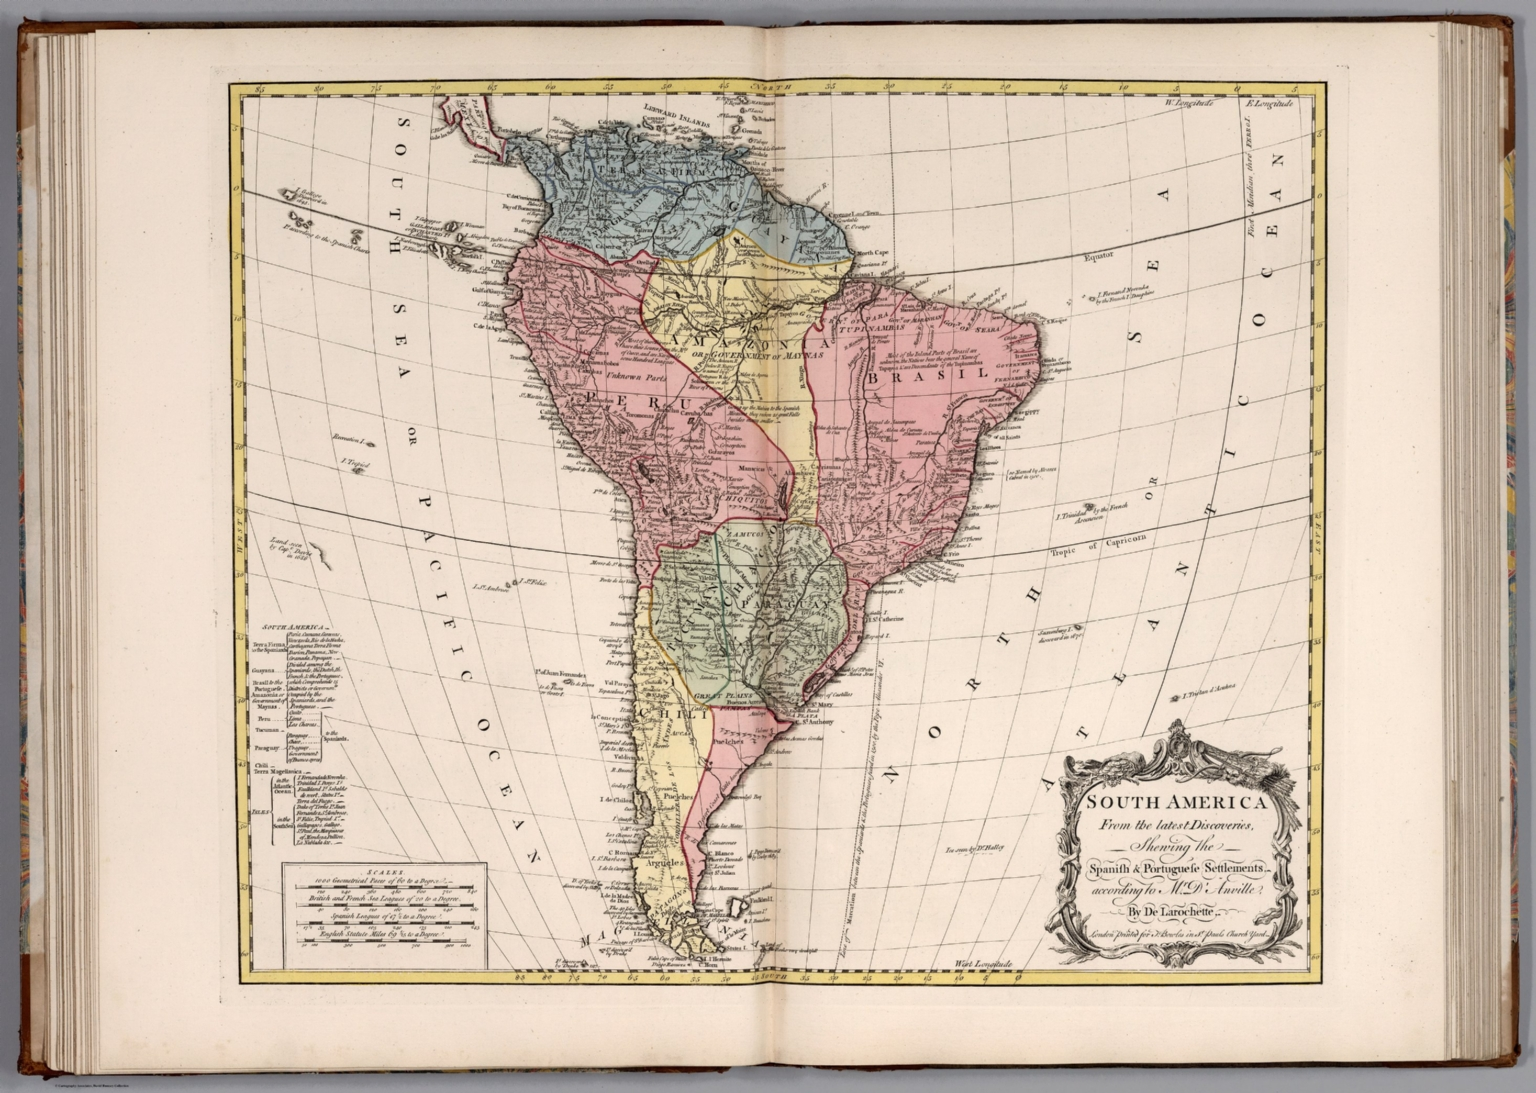 South America Shewing the Spanish & Portuguese Settlements ...